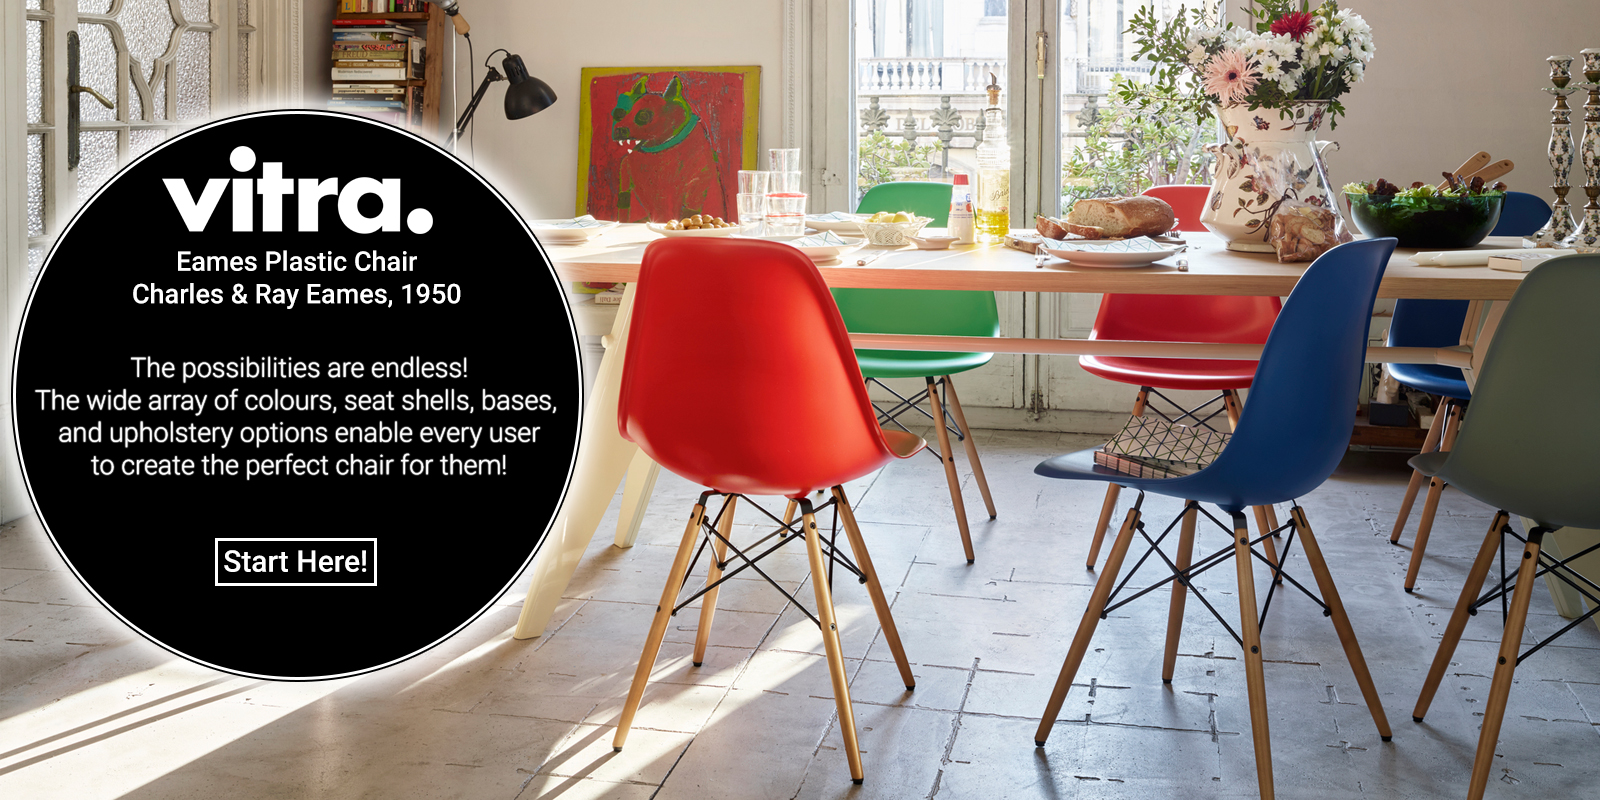 Vitra Eames Plastic Chair Promotion